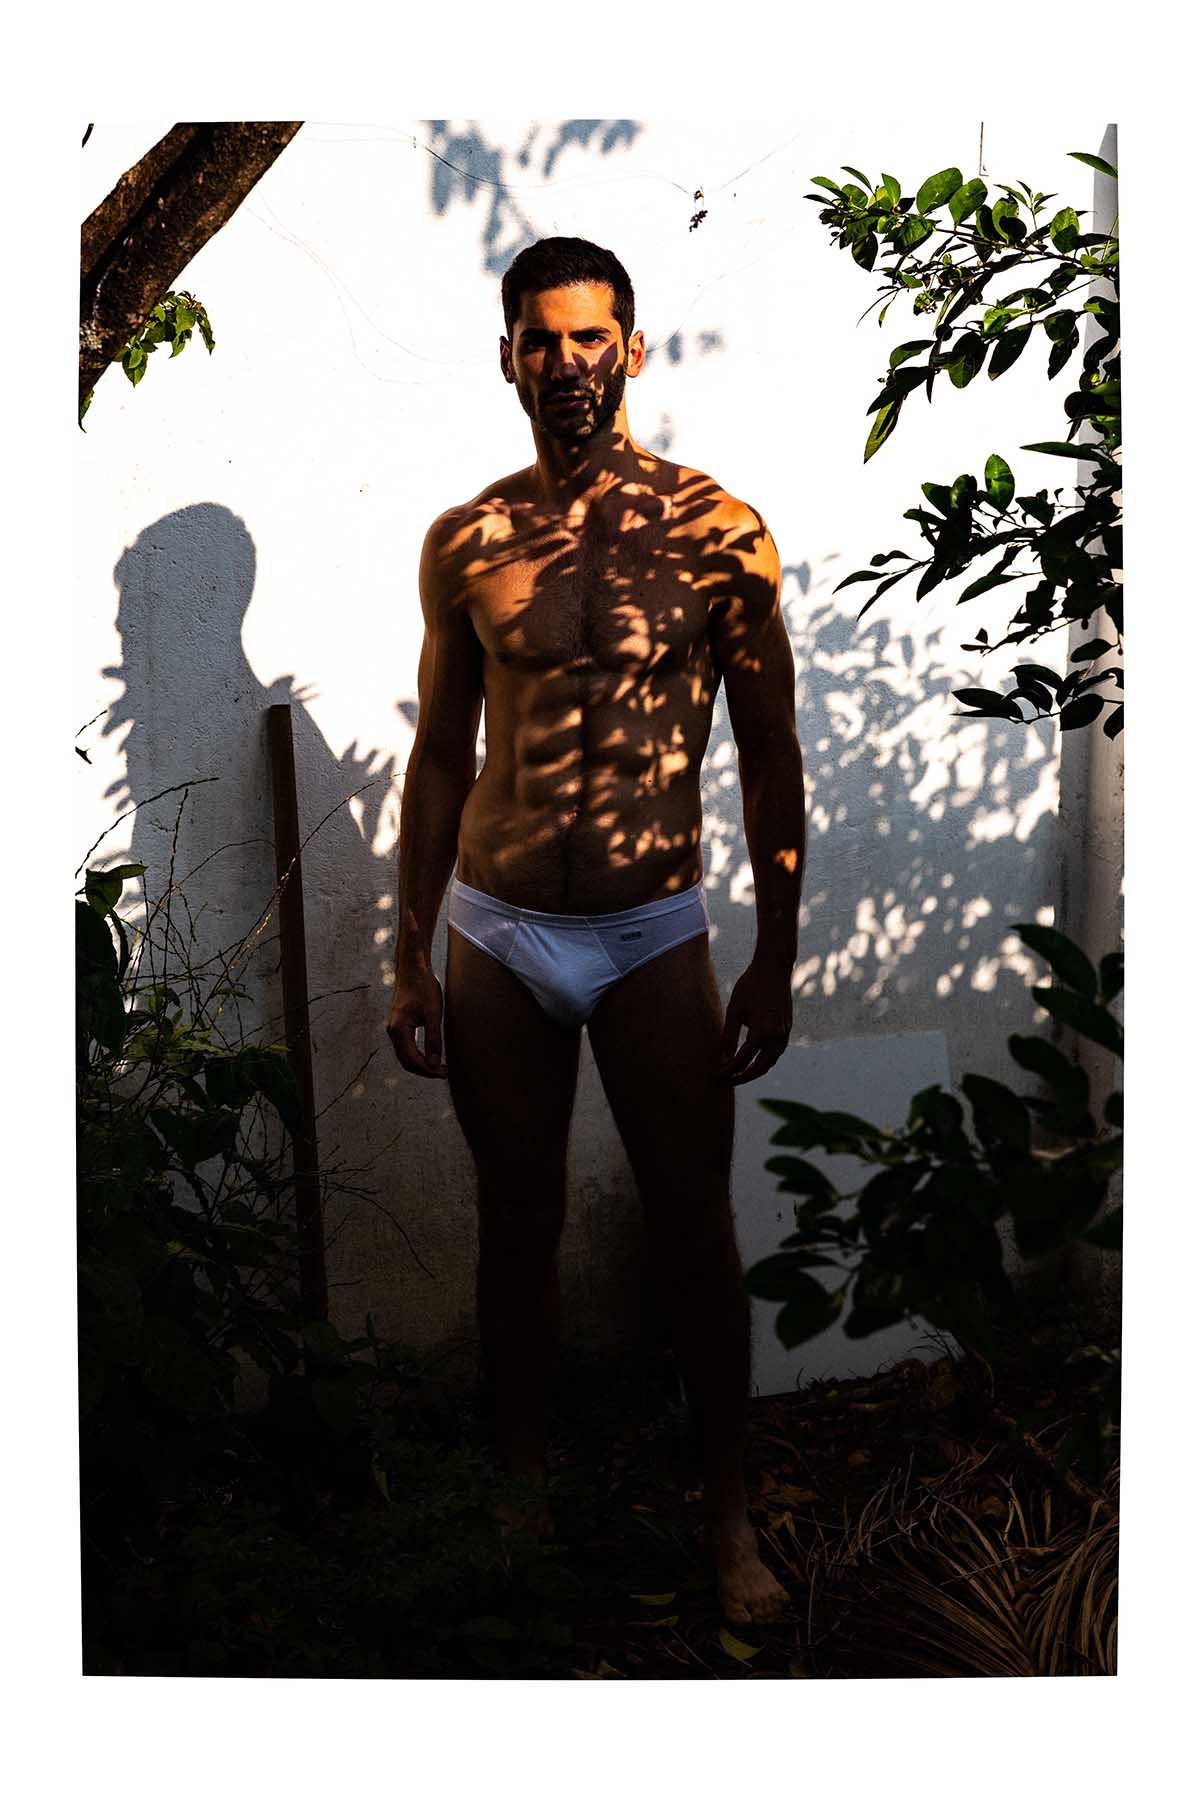 Thomás de Lucca by Gilberto Fritsch for Brazilian Male Model